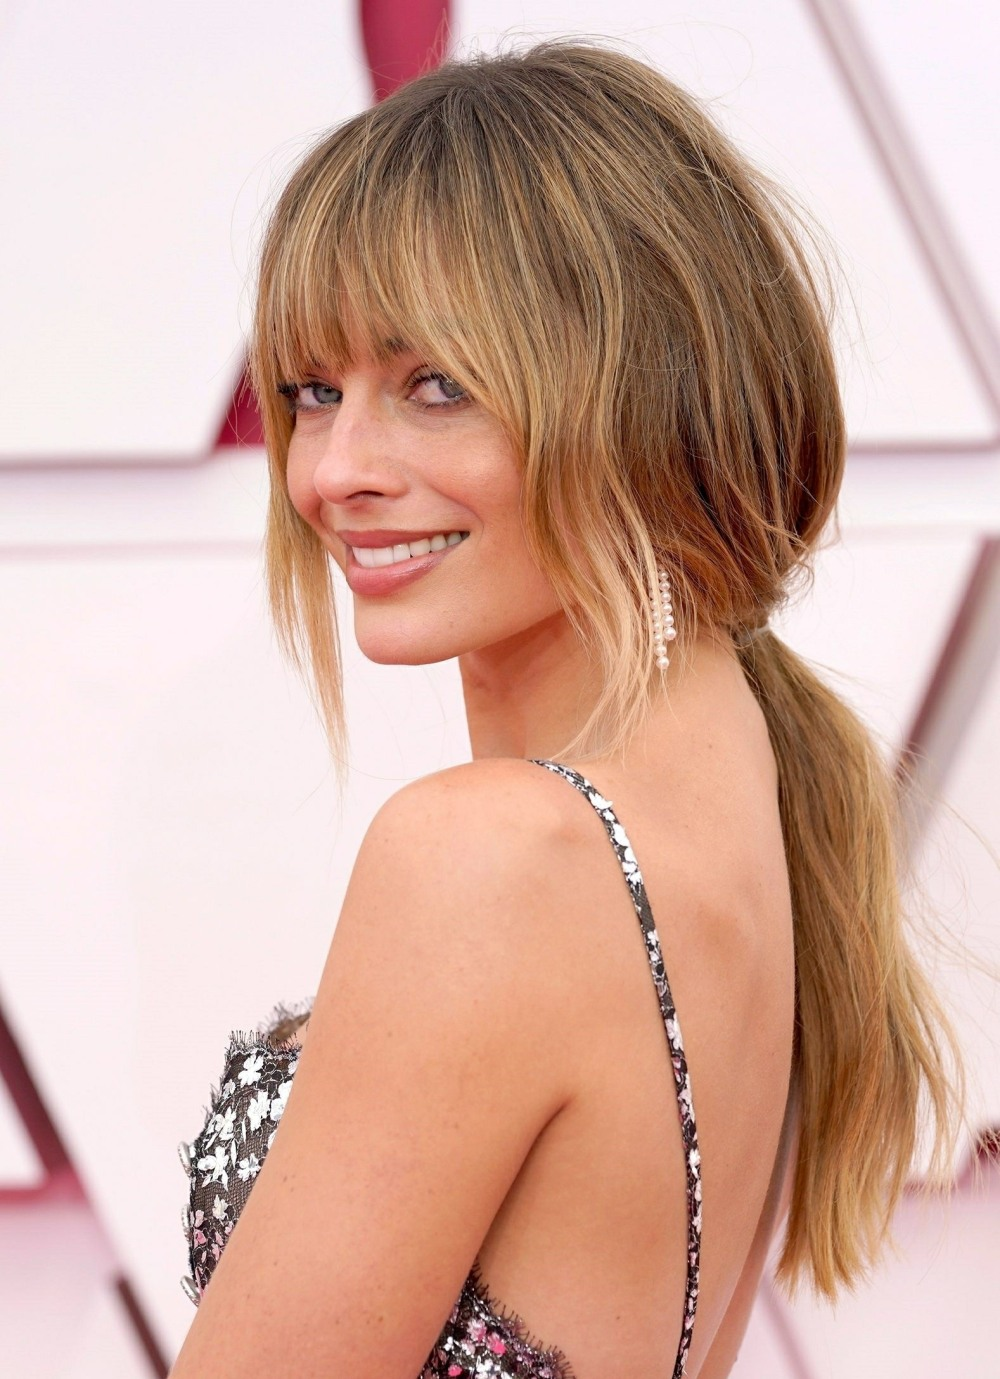 93rd Annual Academy Awards red carpet arrivals